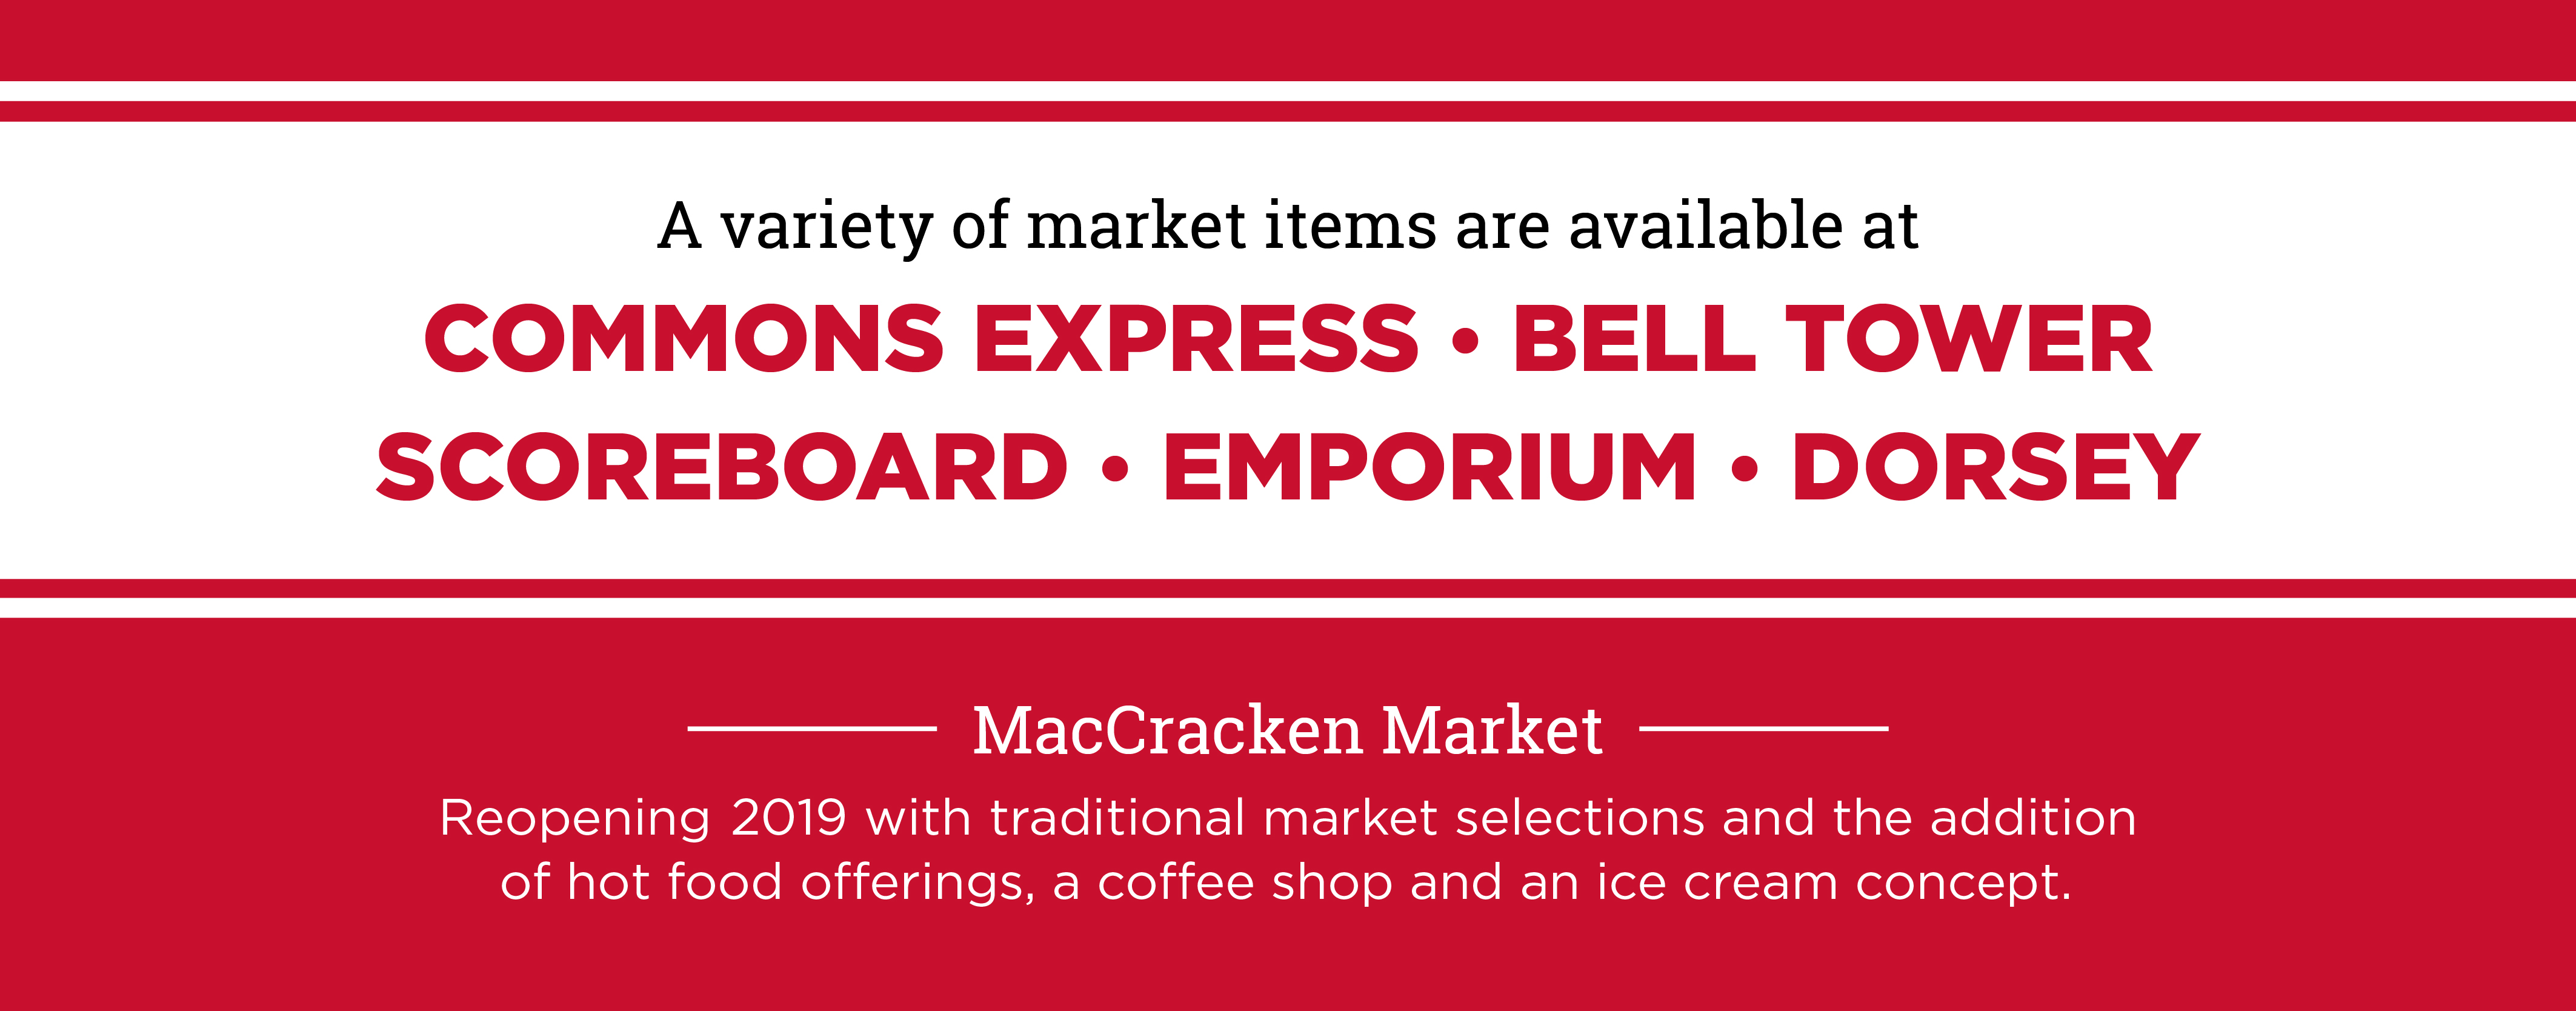 a variety of market items are available at commons express, bell tower, scoreboard, emporium, and dorsey. MacCracken Market. Reopening 2019 with traditional market selections and the addition of hot food offerings, a coffee shop and an ice cream concept.